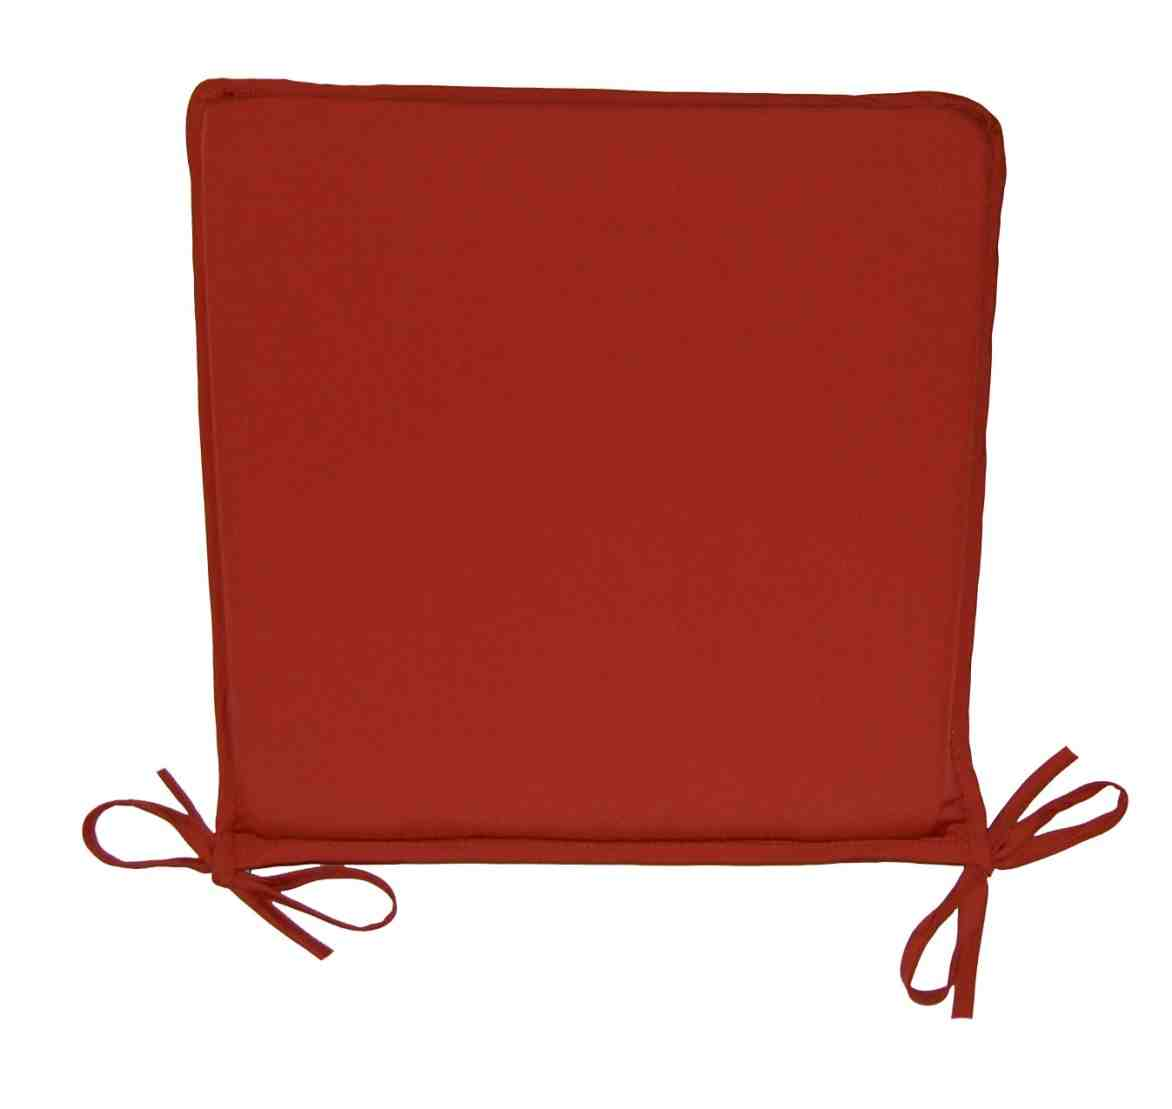 Chair Cushions For Kitchen Chairs Red Kitchen Chair Cushions Home Furniture Design